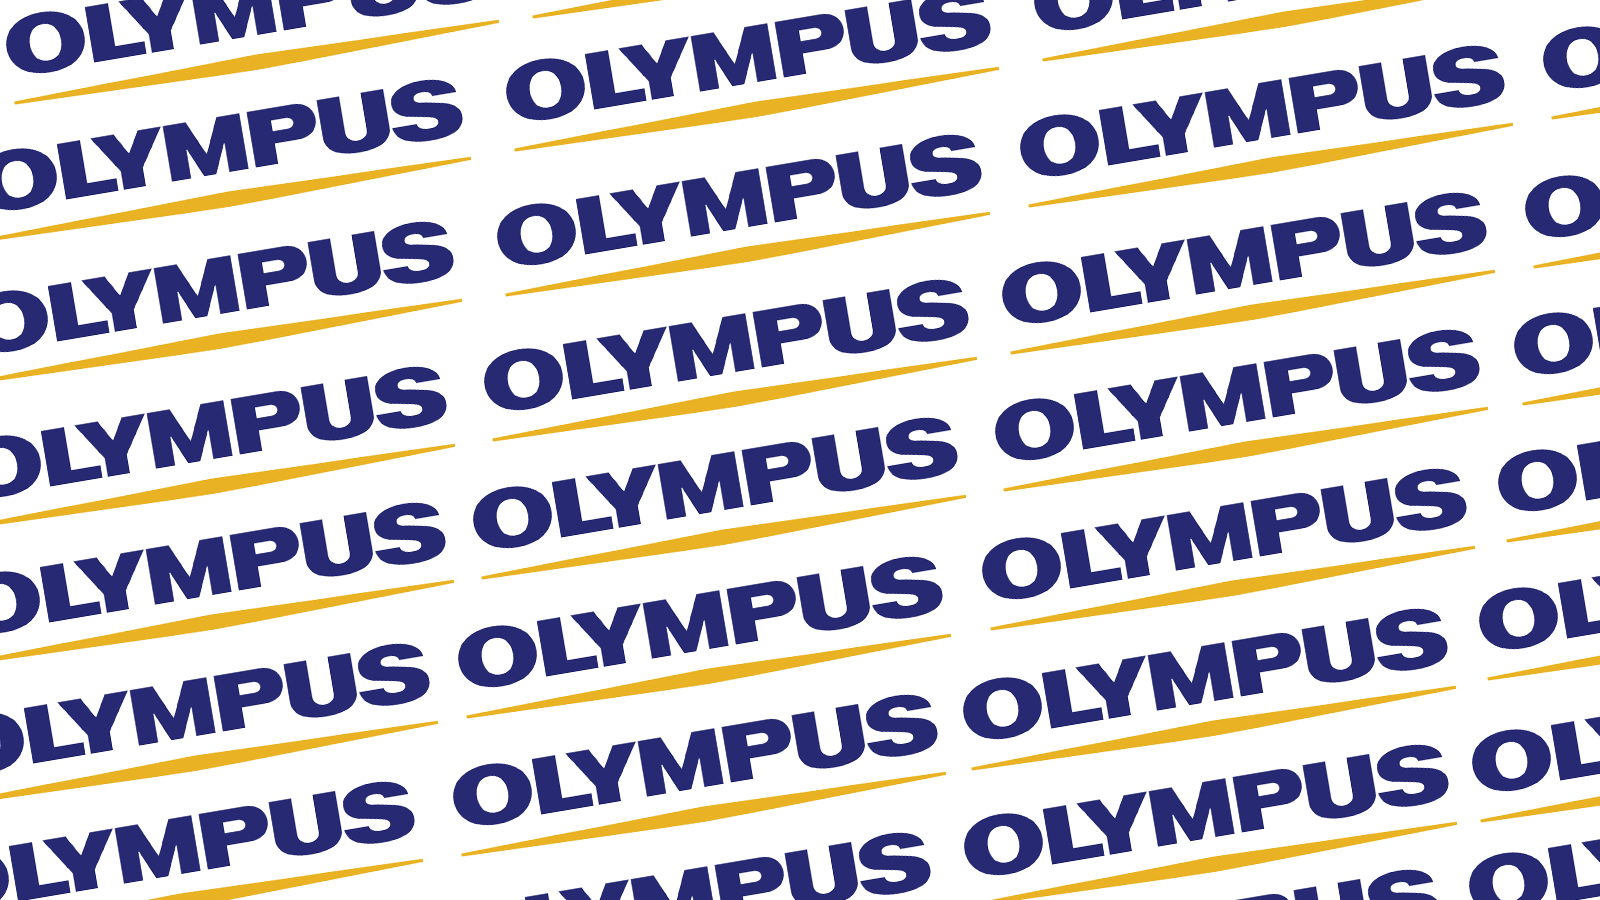 A look at digital technology company Olympus (plus advice for getting hired)